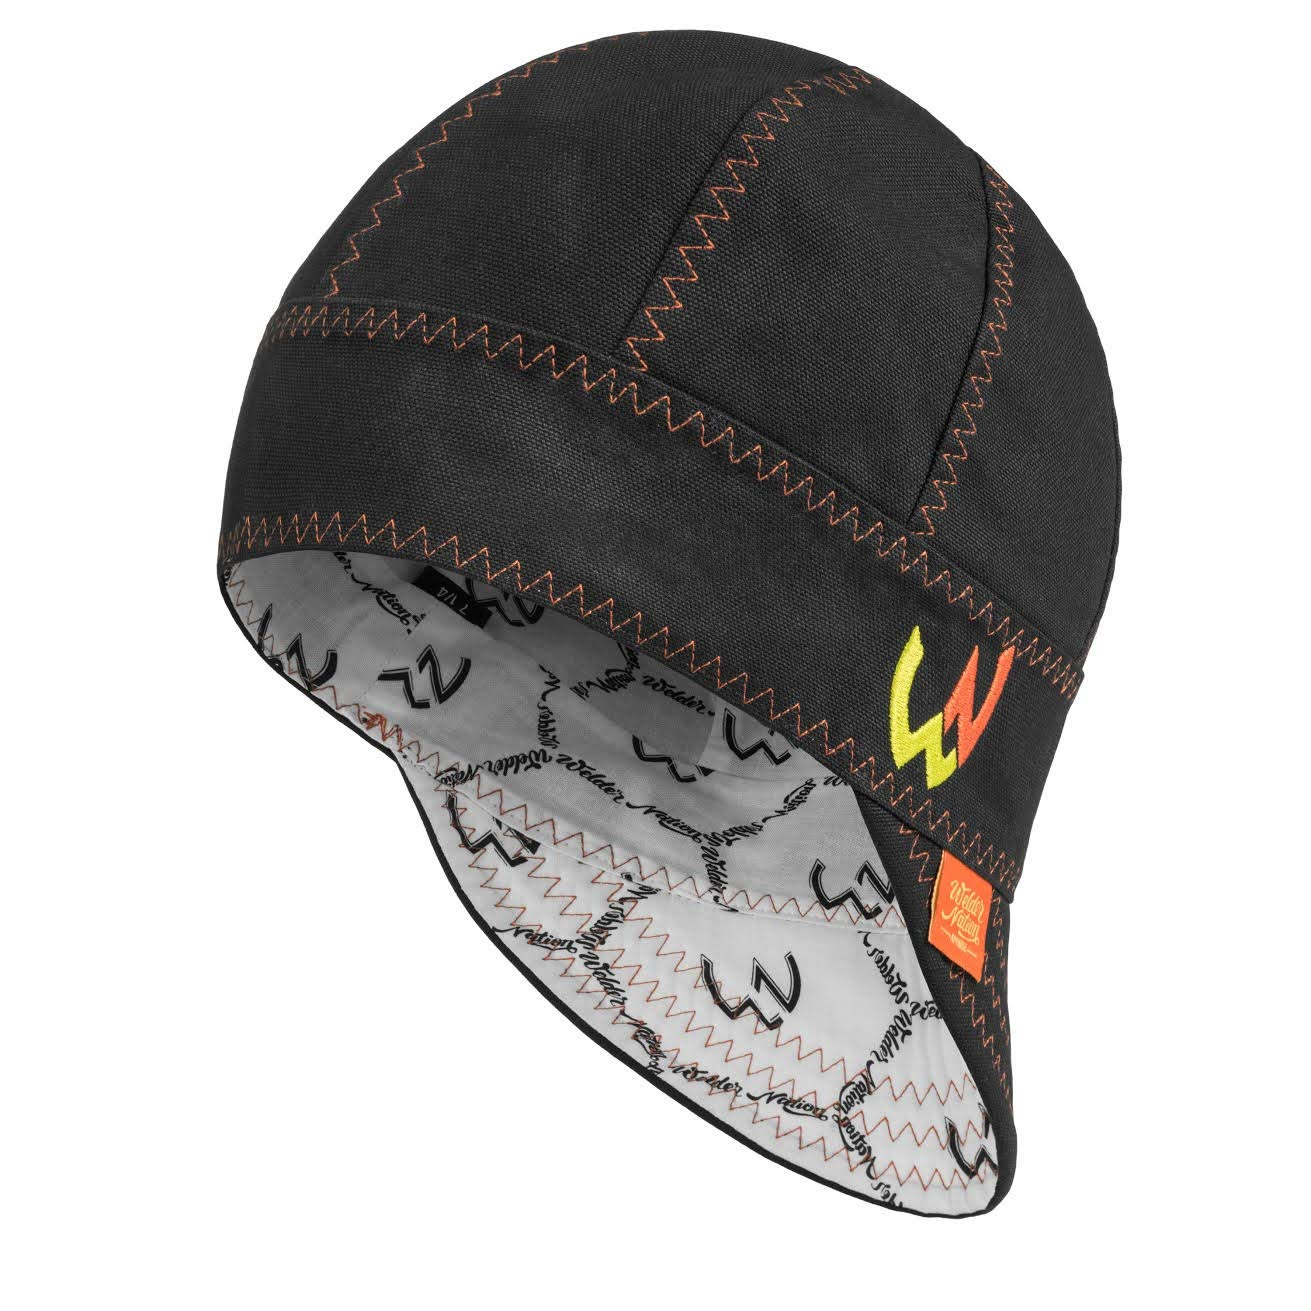 8 panel Welding Cap durable 7 1//8, Black, Orange for safety and protection while welding STICK ARC Welder Nation soft 10 oz cotton duck canvas